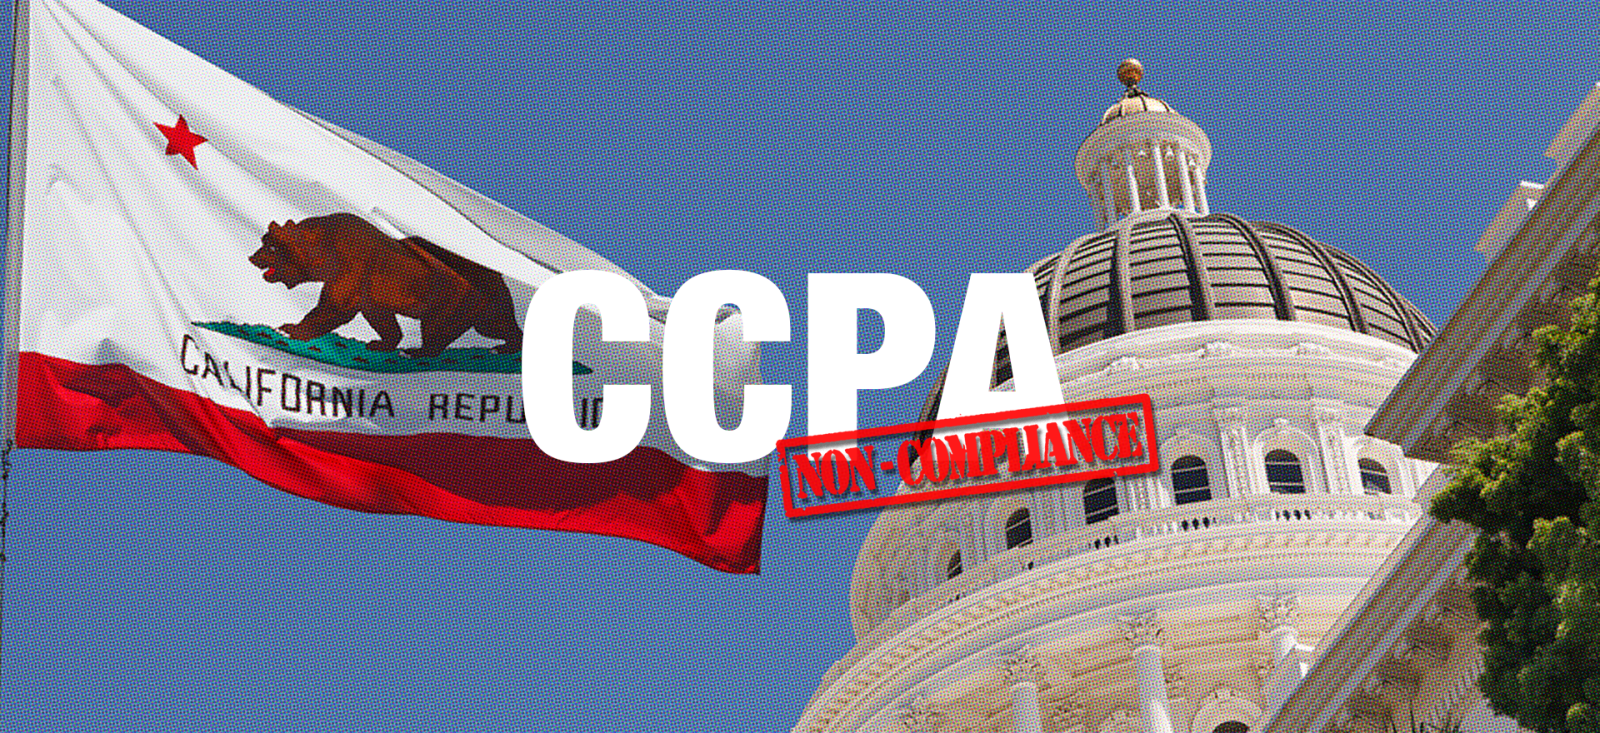 California's AG will prosecute companies that weren't CCPA compliant by January 1st